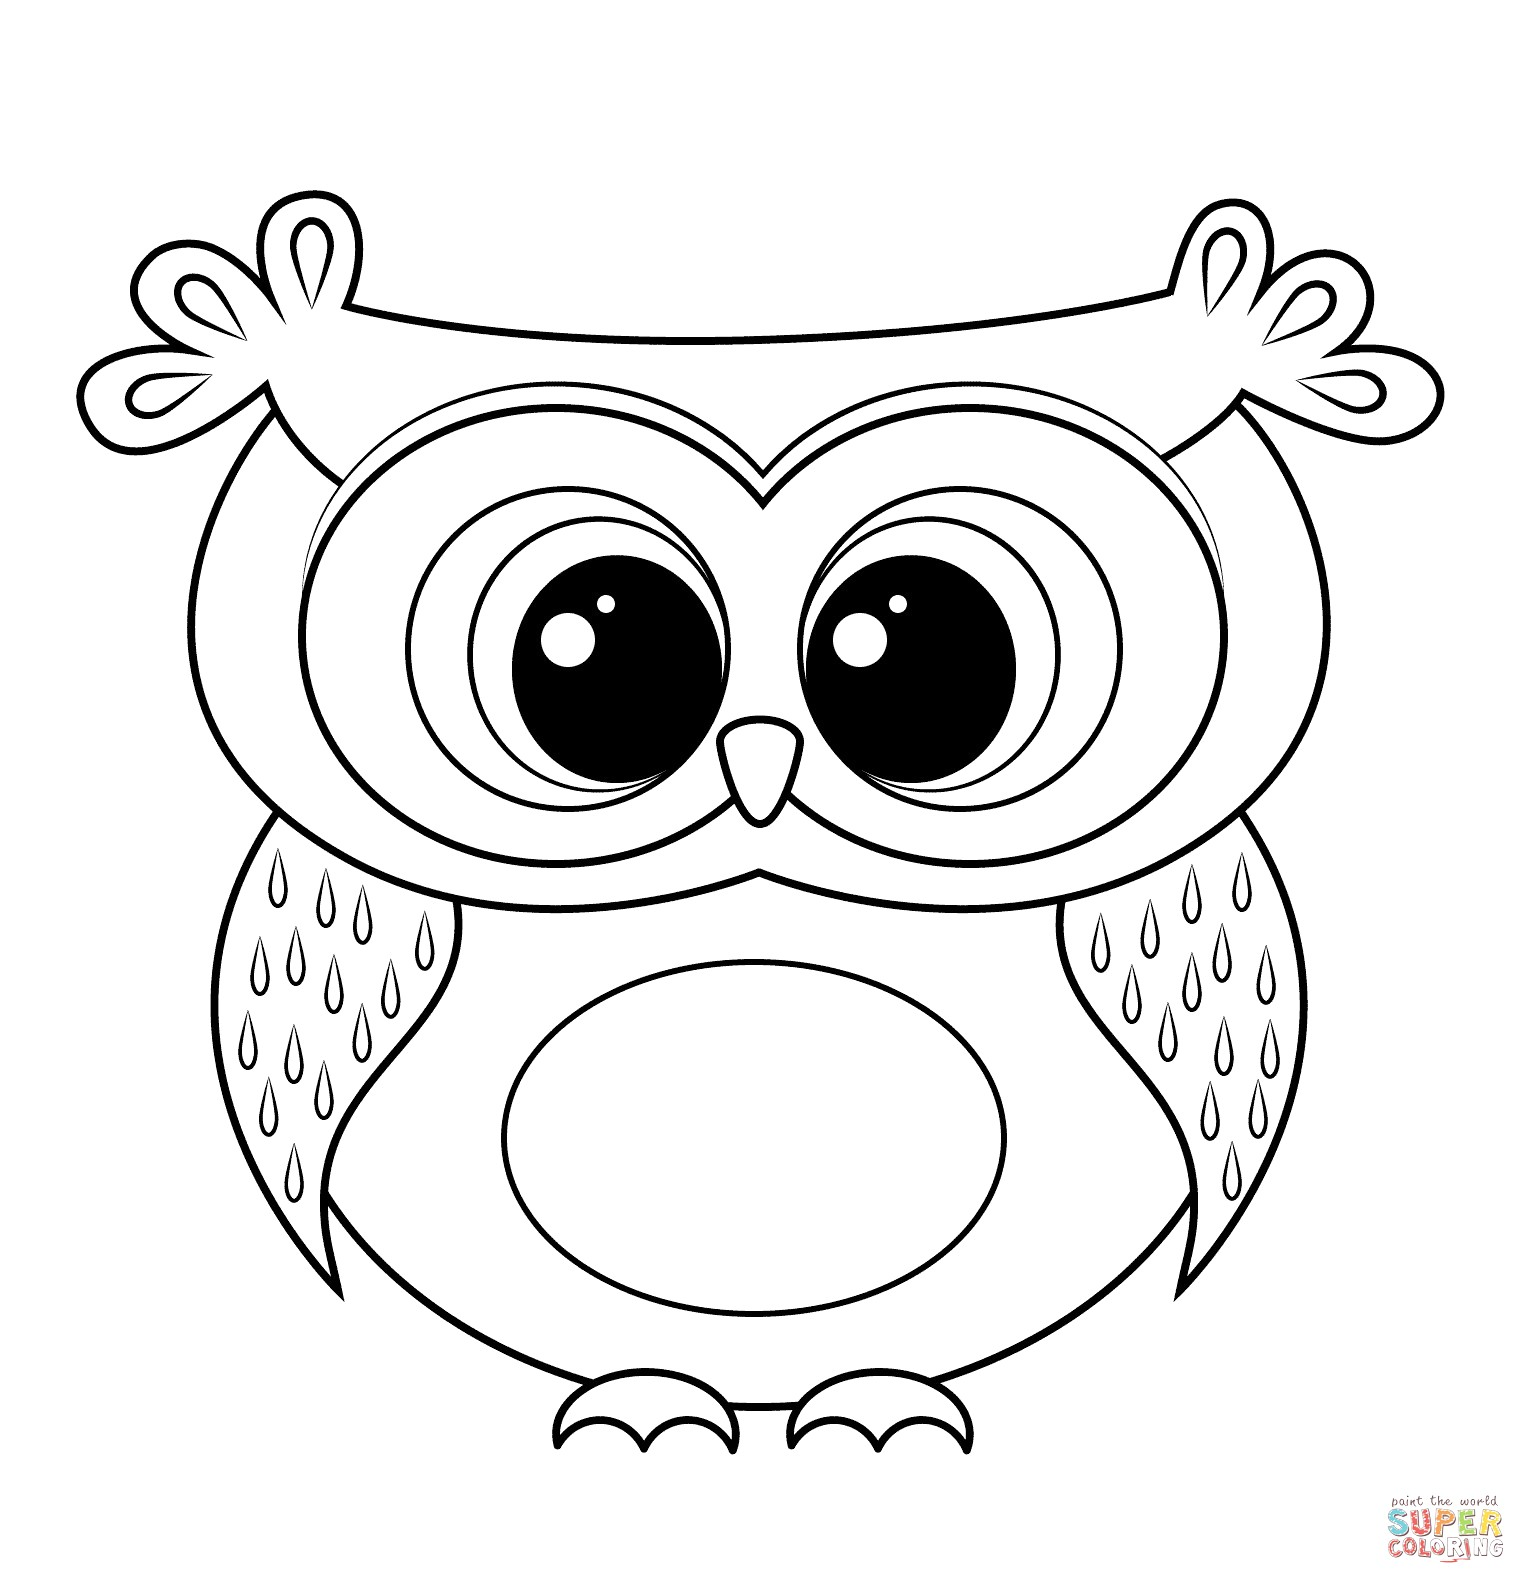 Coloring Ideas : Coloring Ideas Owl Clipart Black And White.